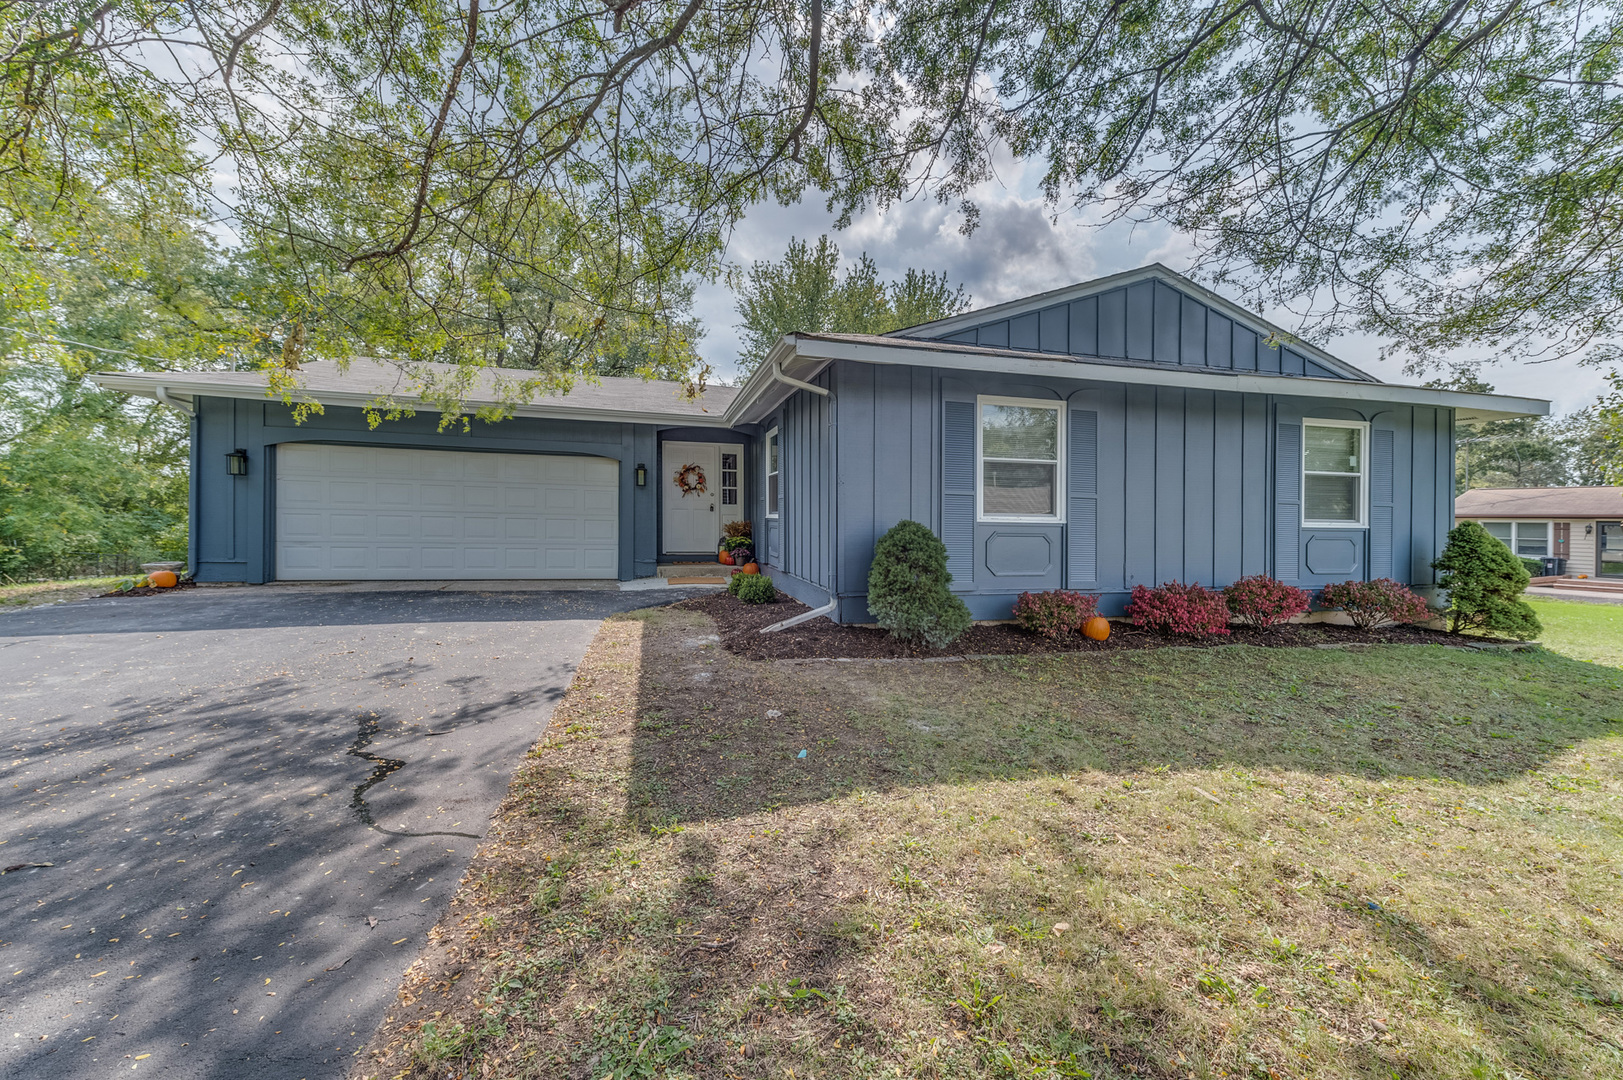 Photo for 1701 South Street, Crystal Lake, IL 60014 (MLS # 10892519)